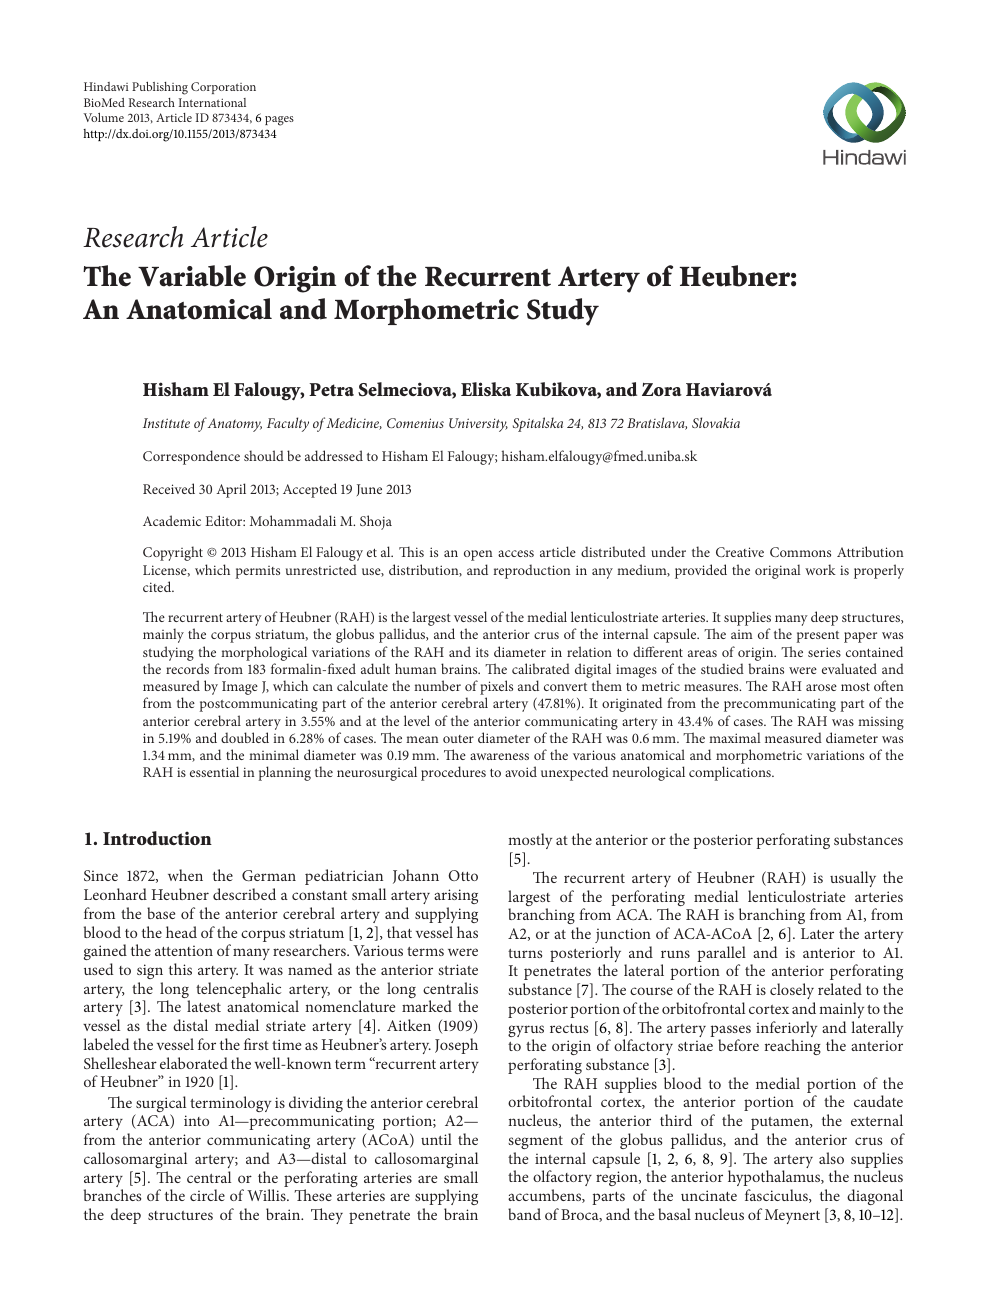 The Variable Origin Of The Recurrent Artery Of Heubner An